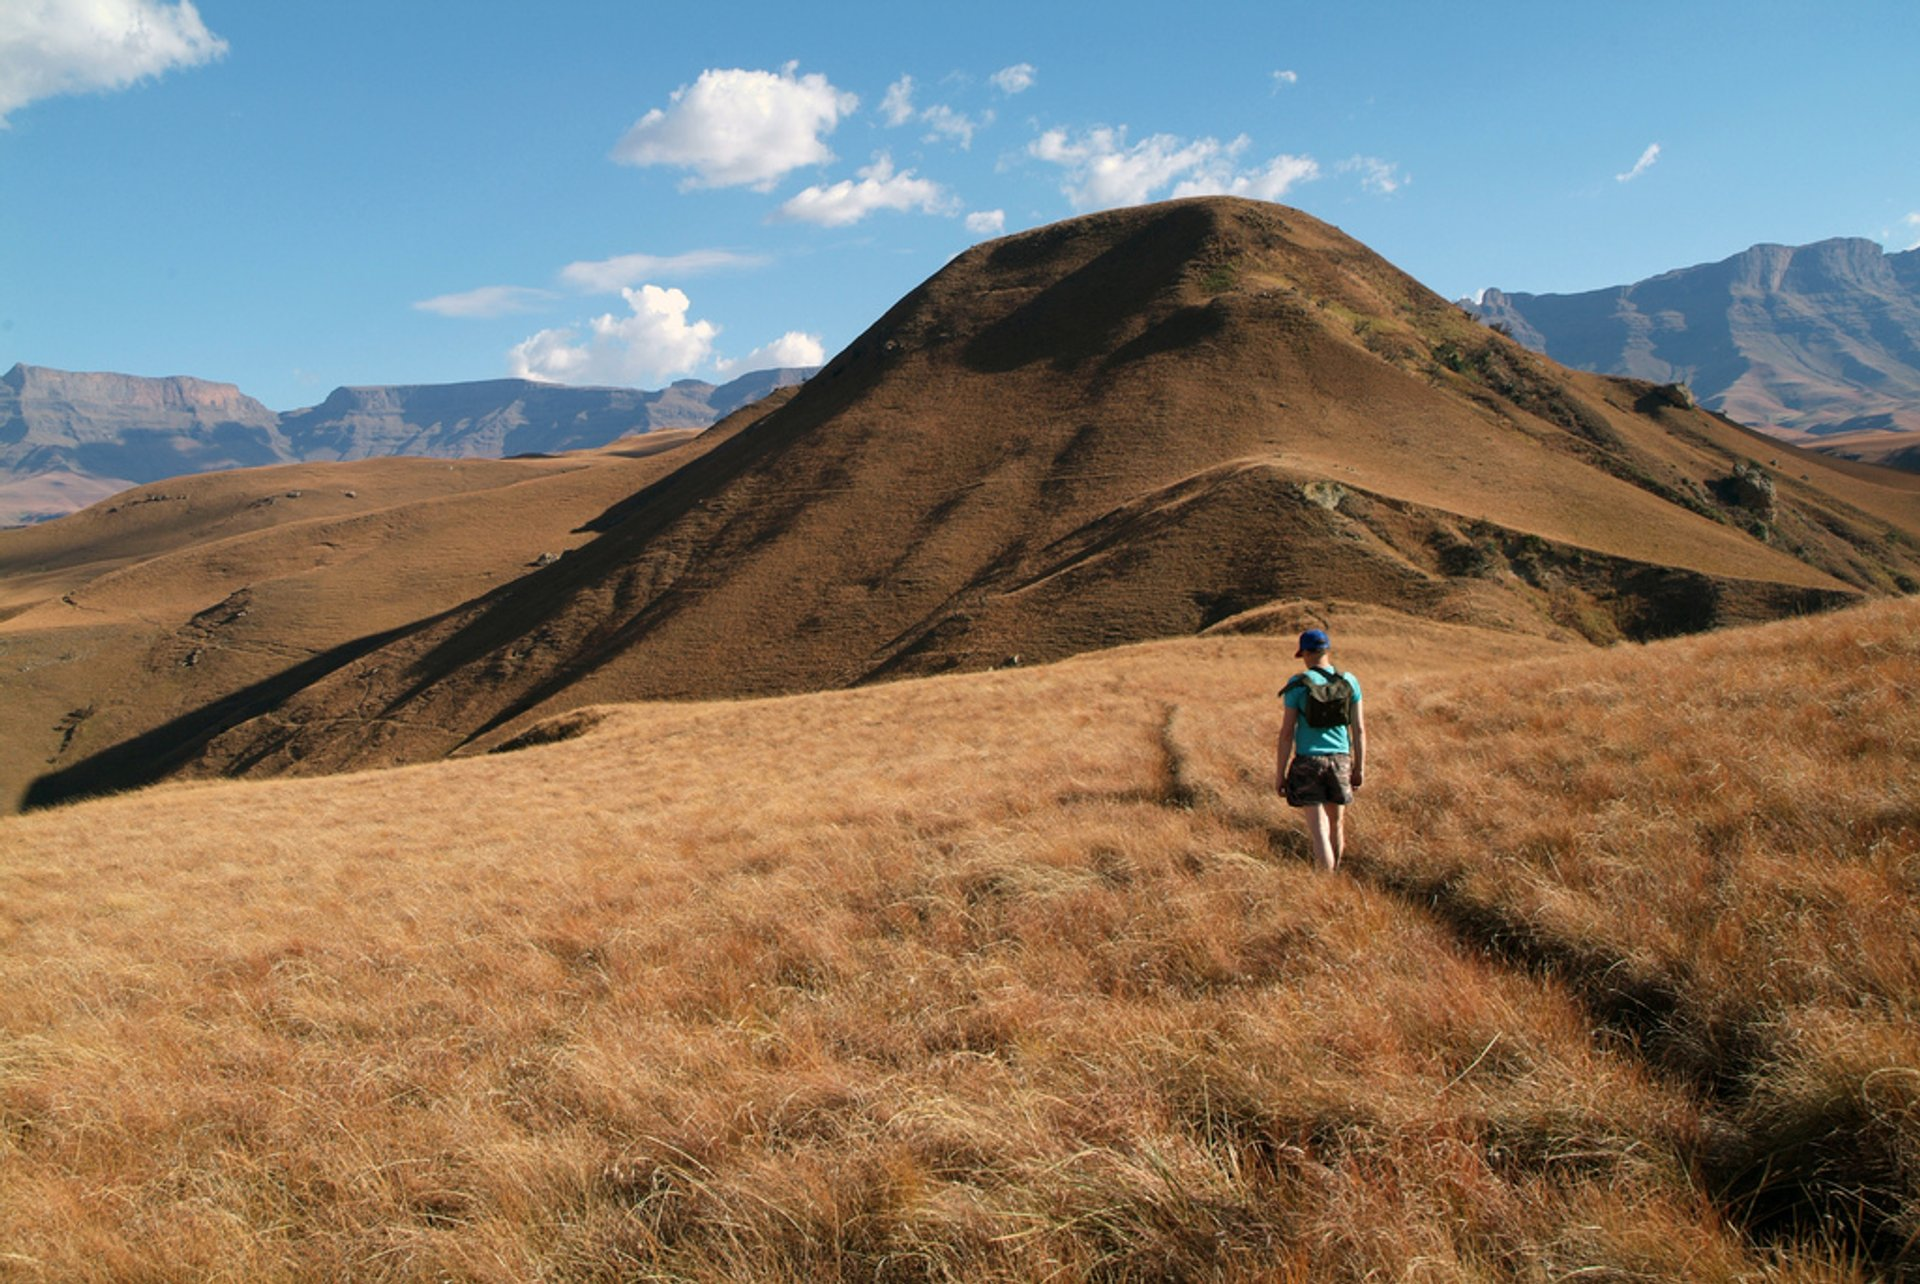 Hiking in Drakensberg in South Africa 2019 - Best Time